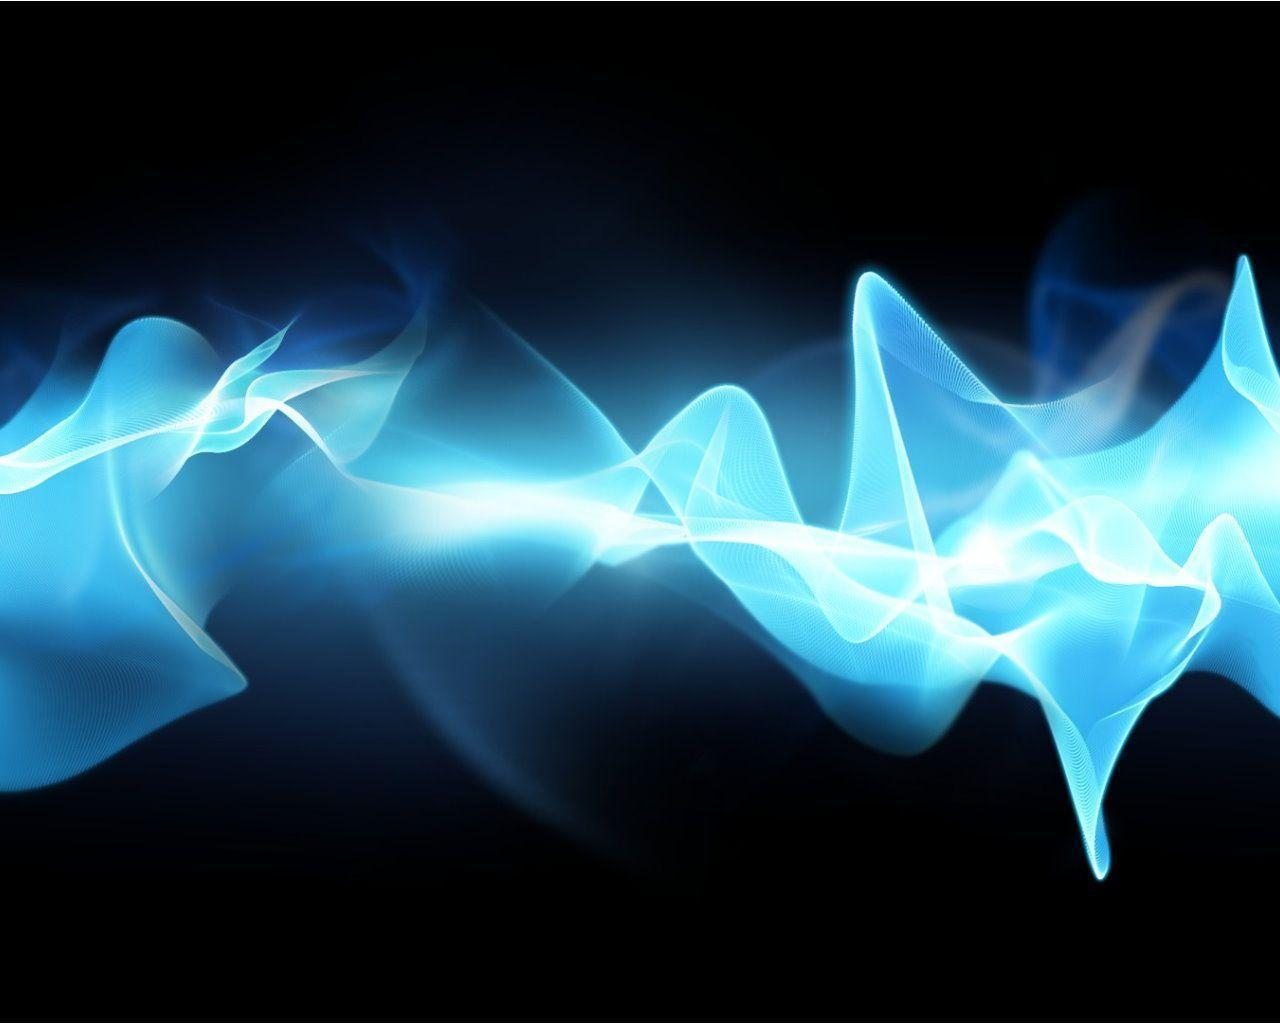 Cool Electric Wallpapers   Top Cool Electric Backgrounds 1280x1024